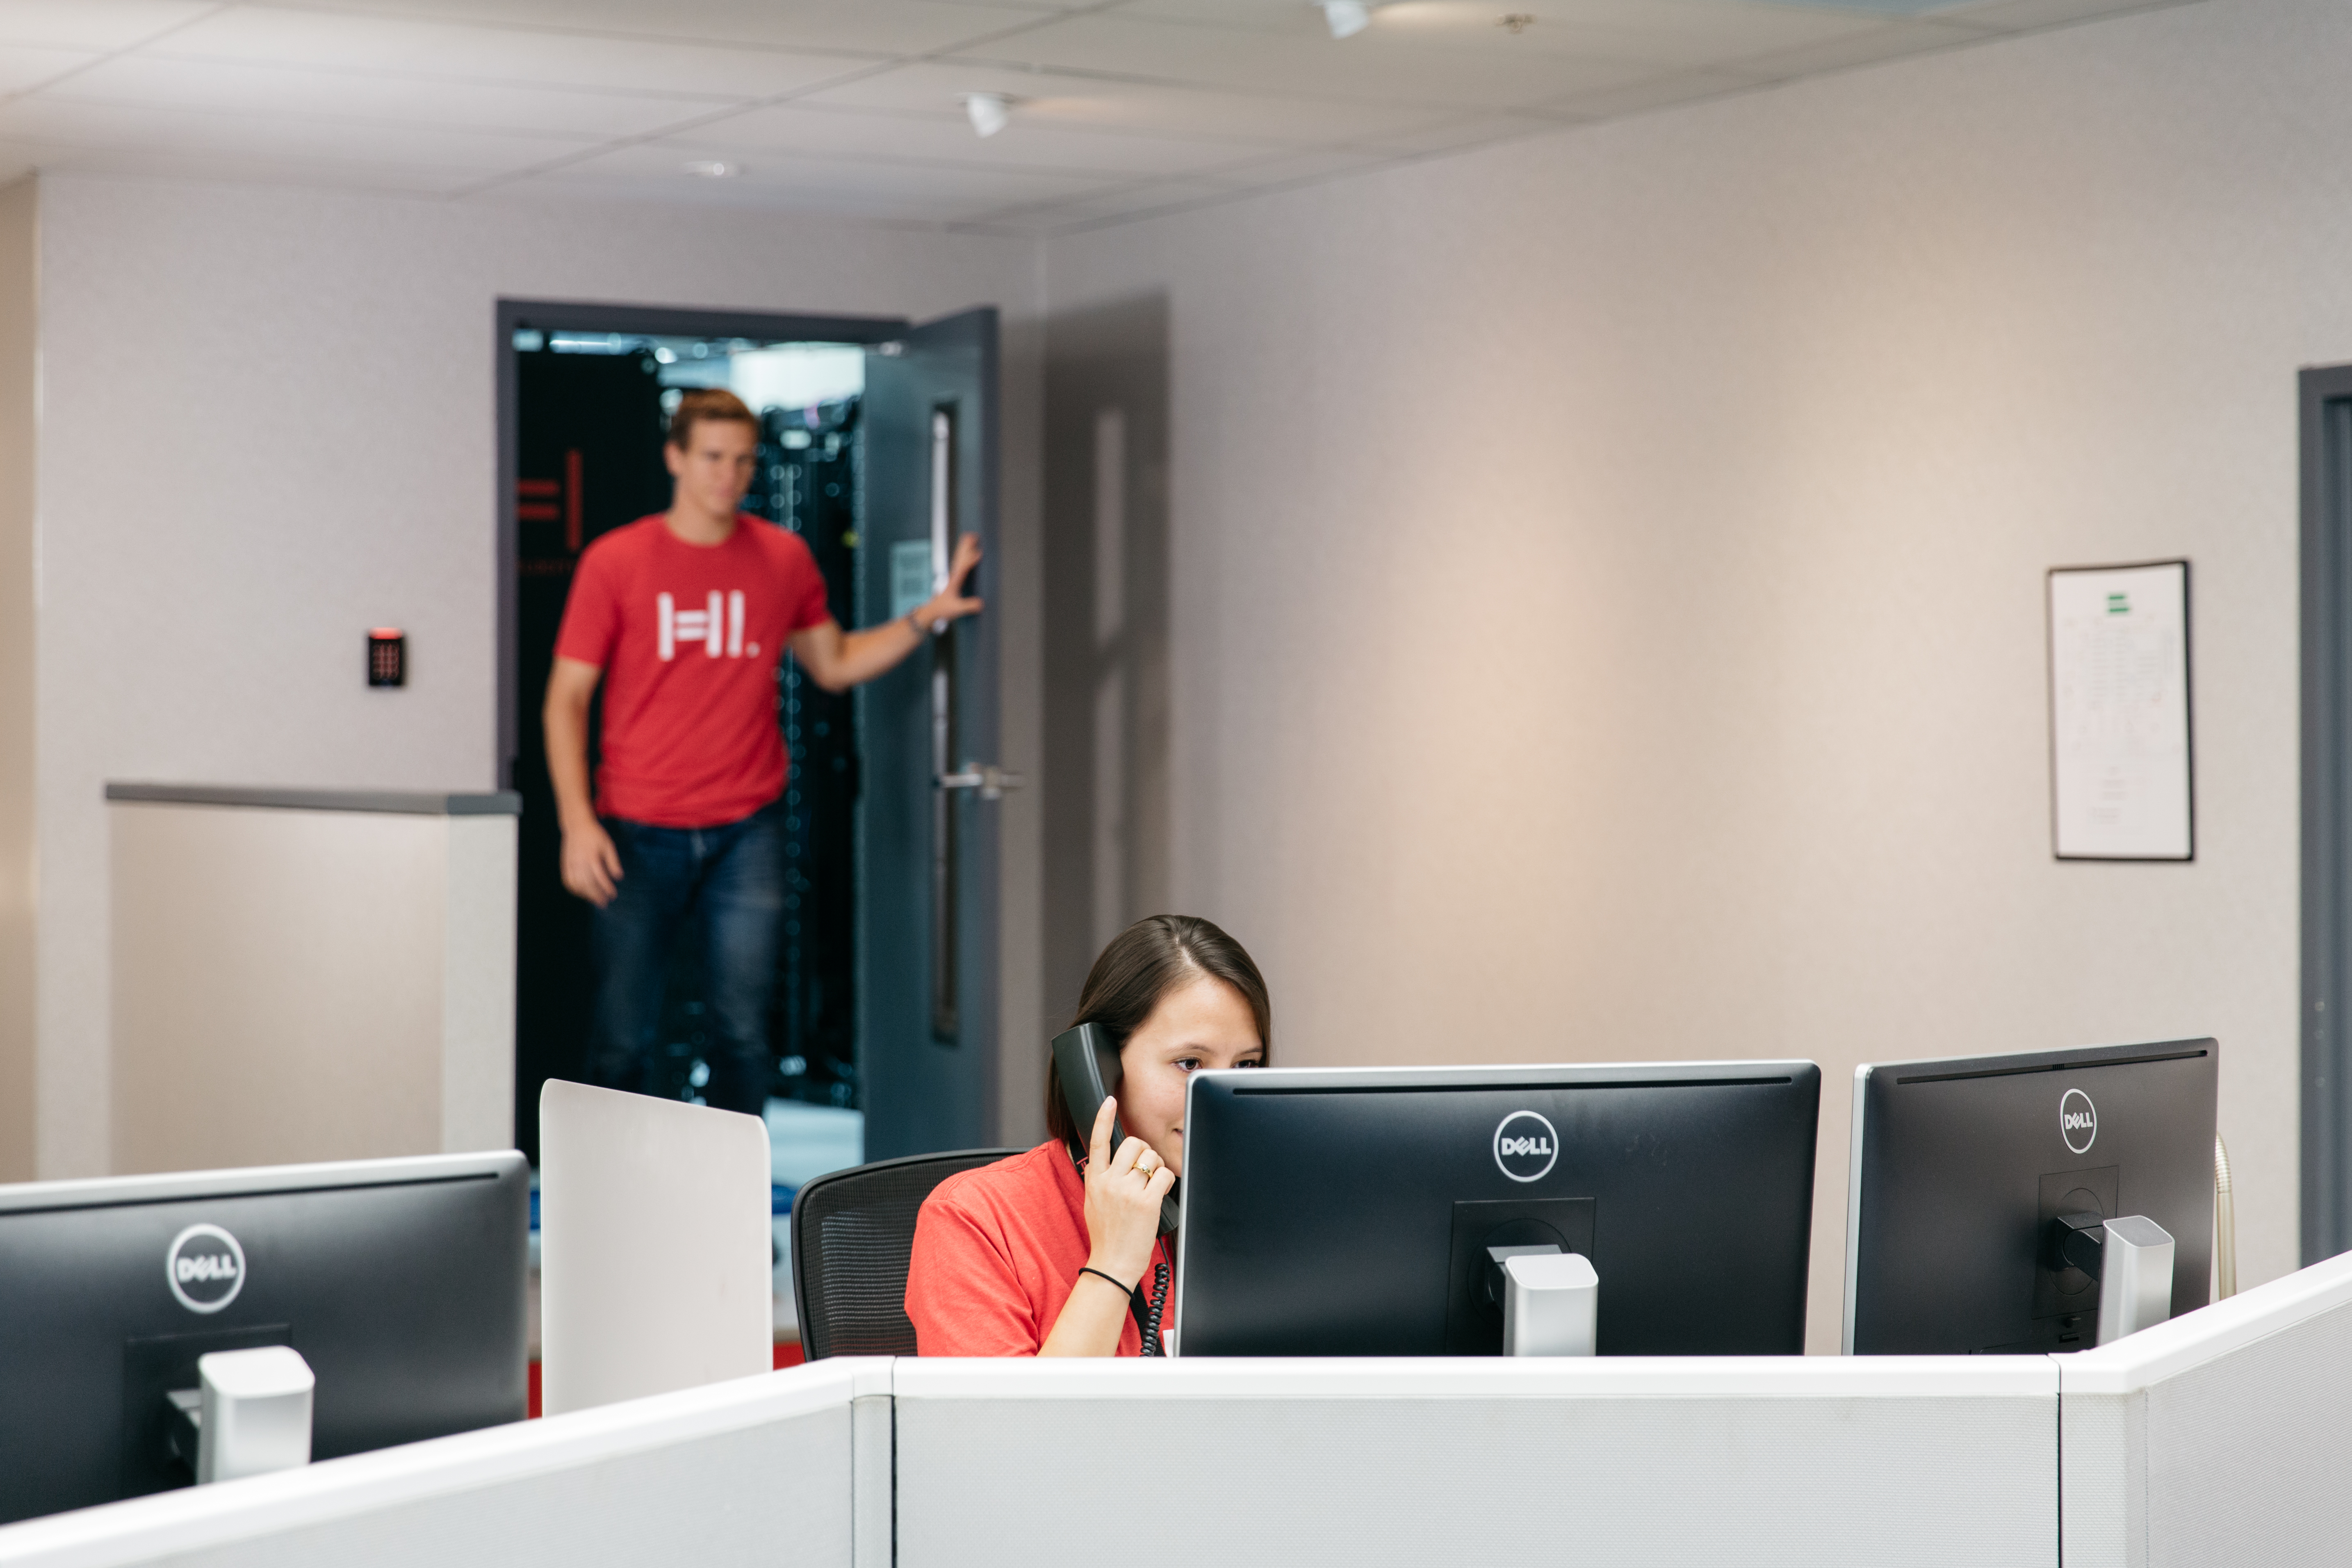 Hivelocity employees assisting a customer over the phone